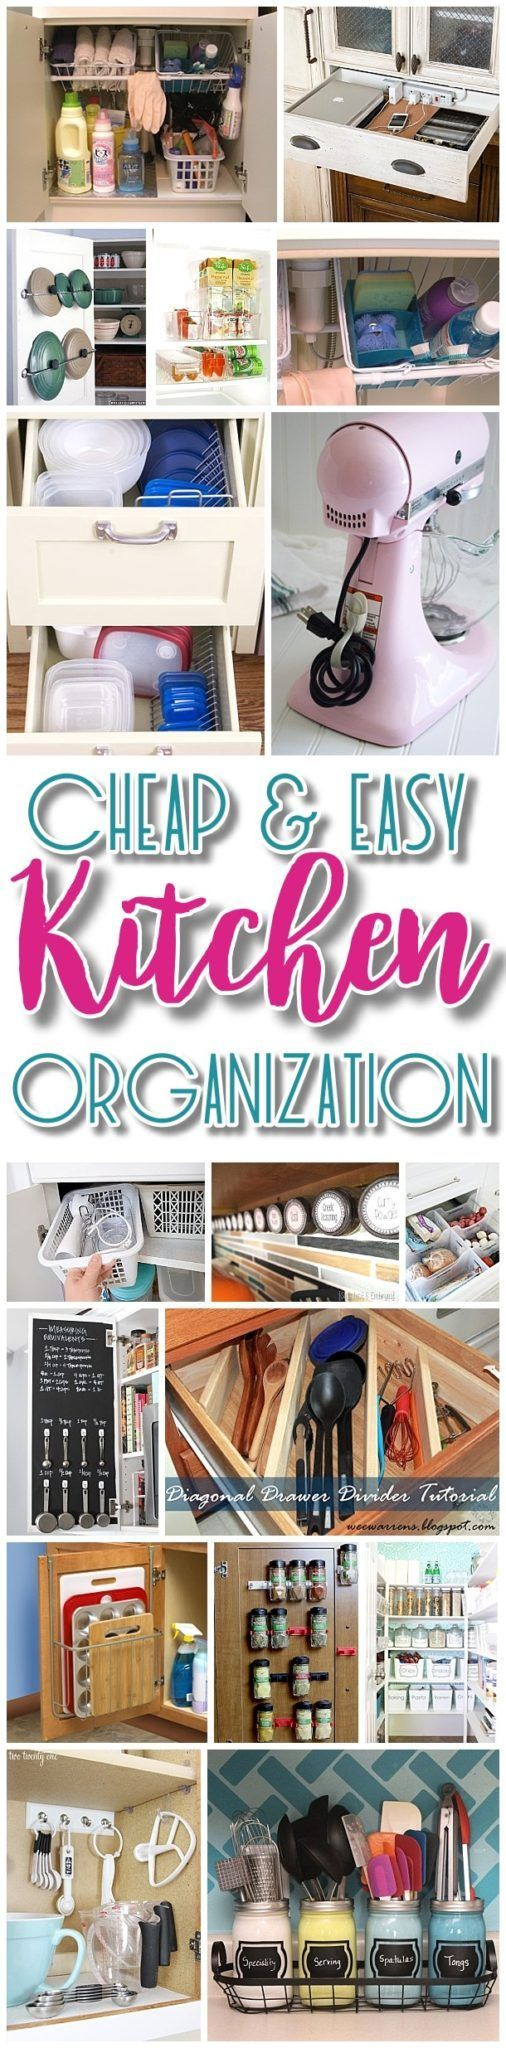 Easy-and-Budget-Friendly-Ways-to-Organize-your-Kitchen-Hacks-Ideas-Space-Saving-tips-and-tricks-for-Organization-in-the-Kitchen-Quickly.jpg 610×2,470 pixels